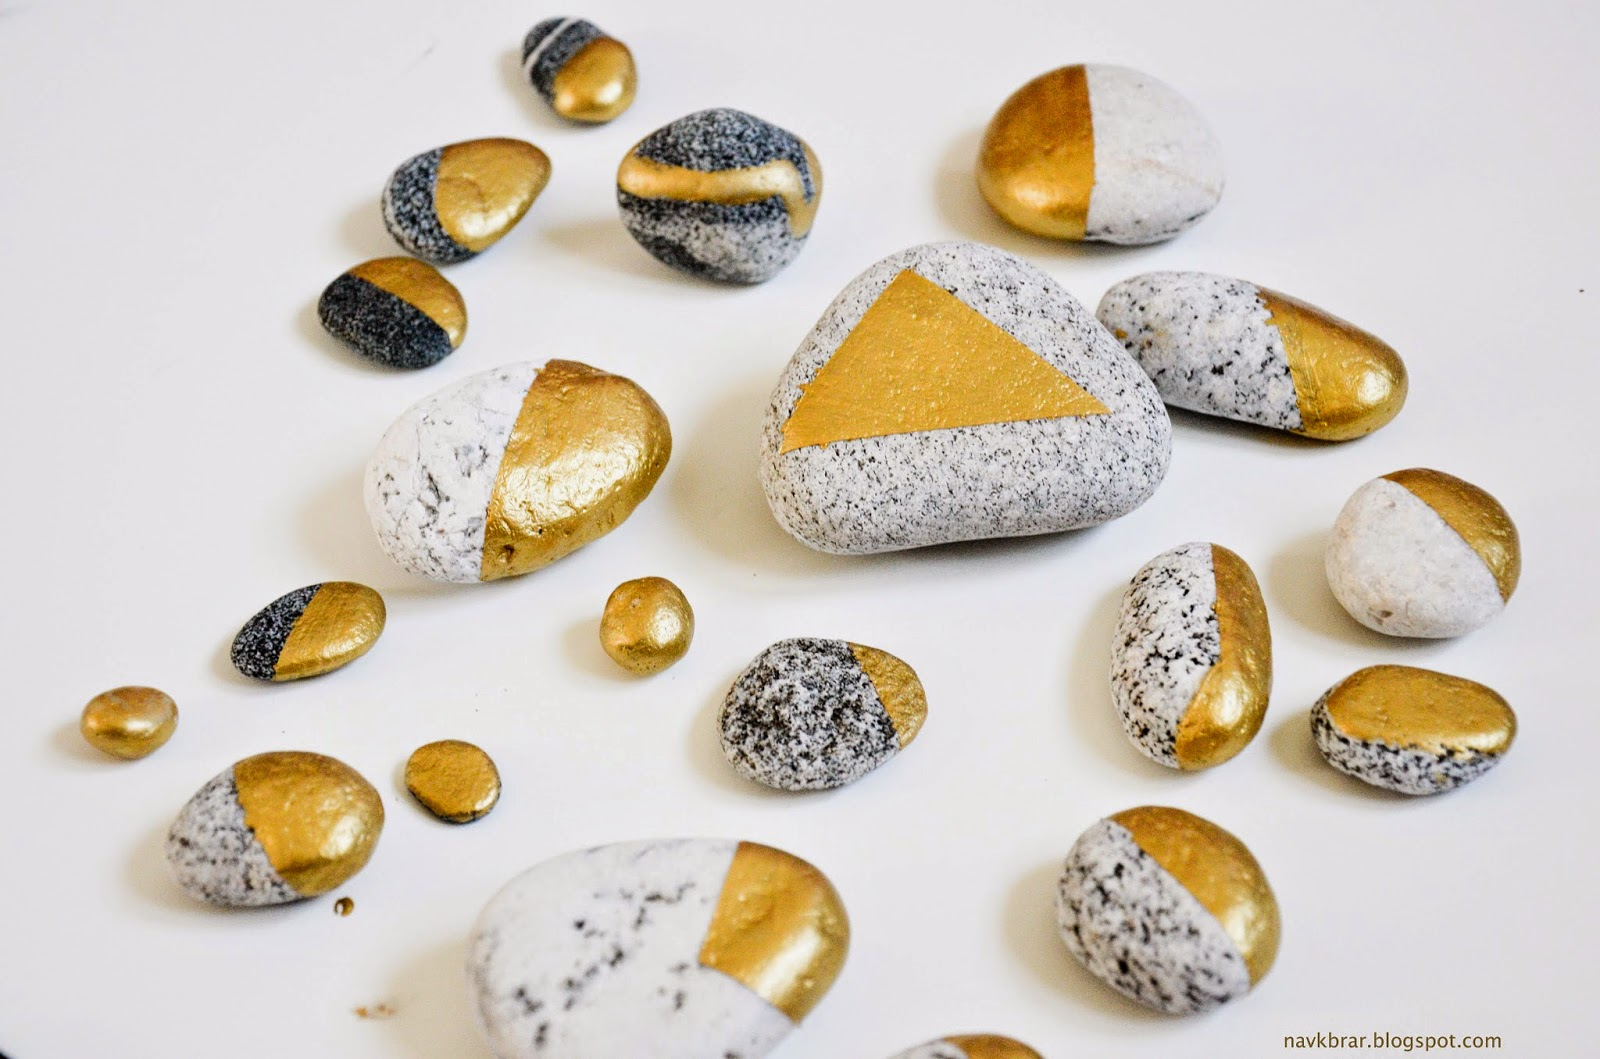 Easy DIY - How to spruce up you rock collections: Paint rocks gold in geometric pattern for a modern decor